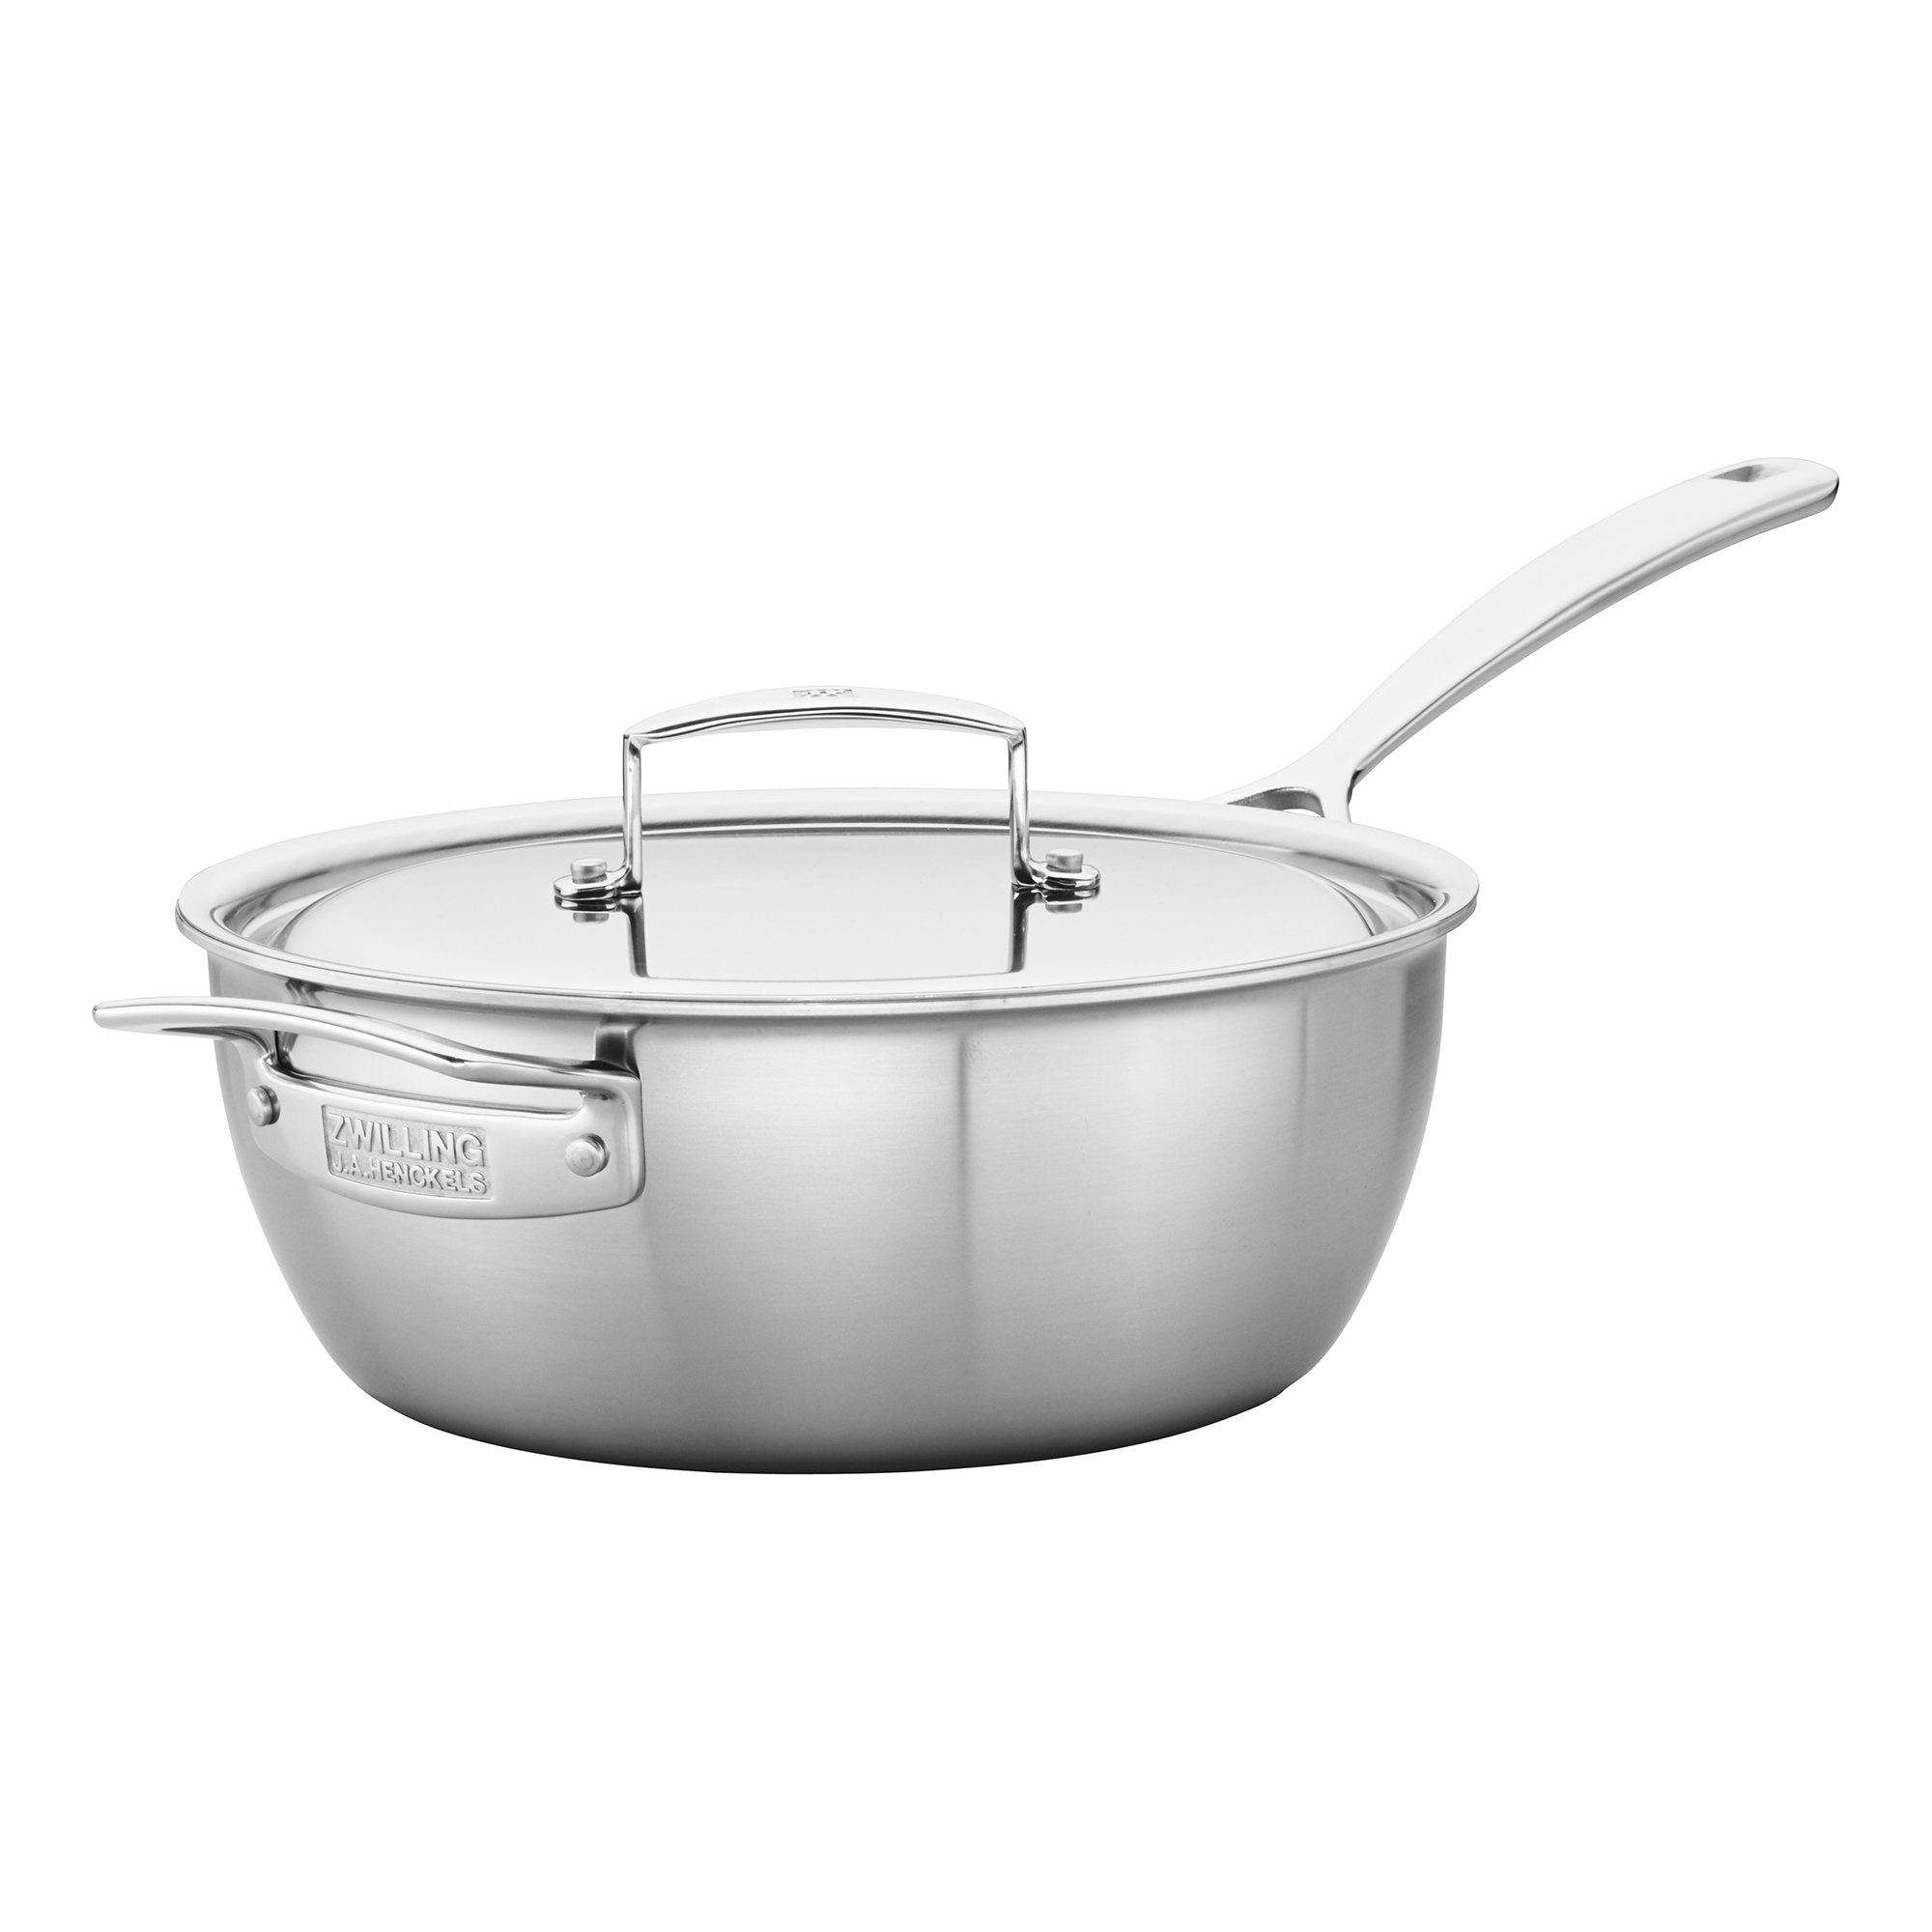 ZWILLING J.A. Henckels 66080-240 Saucier, 3.5 quart, Stainless Steel by ZWILLING J.A. Henckels (Image #3)